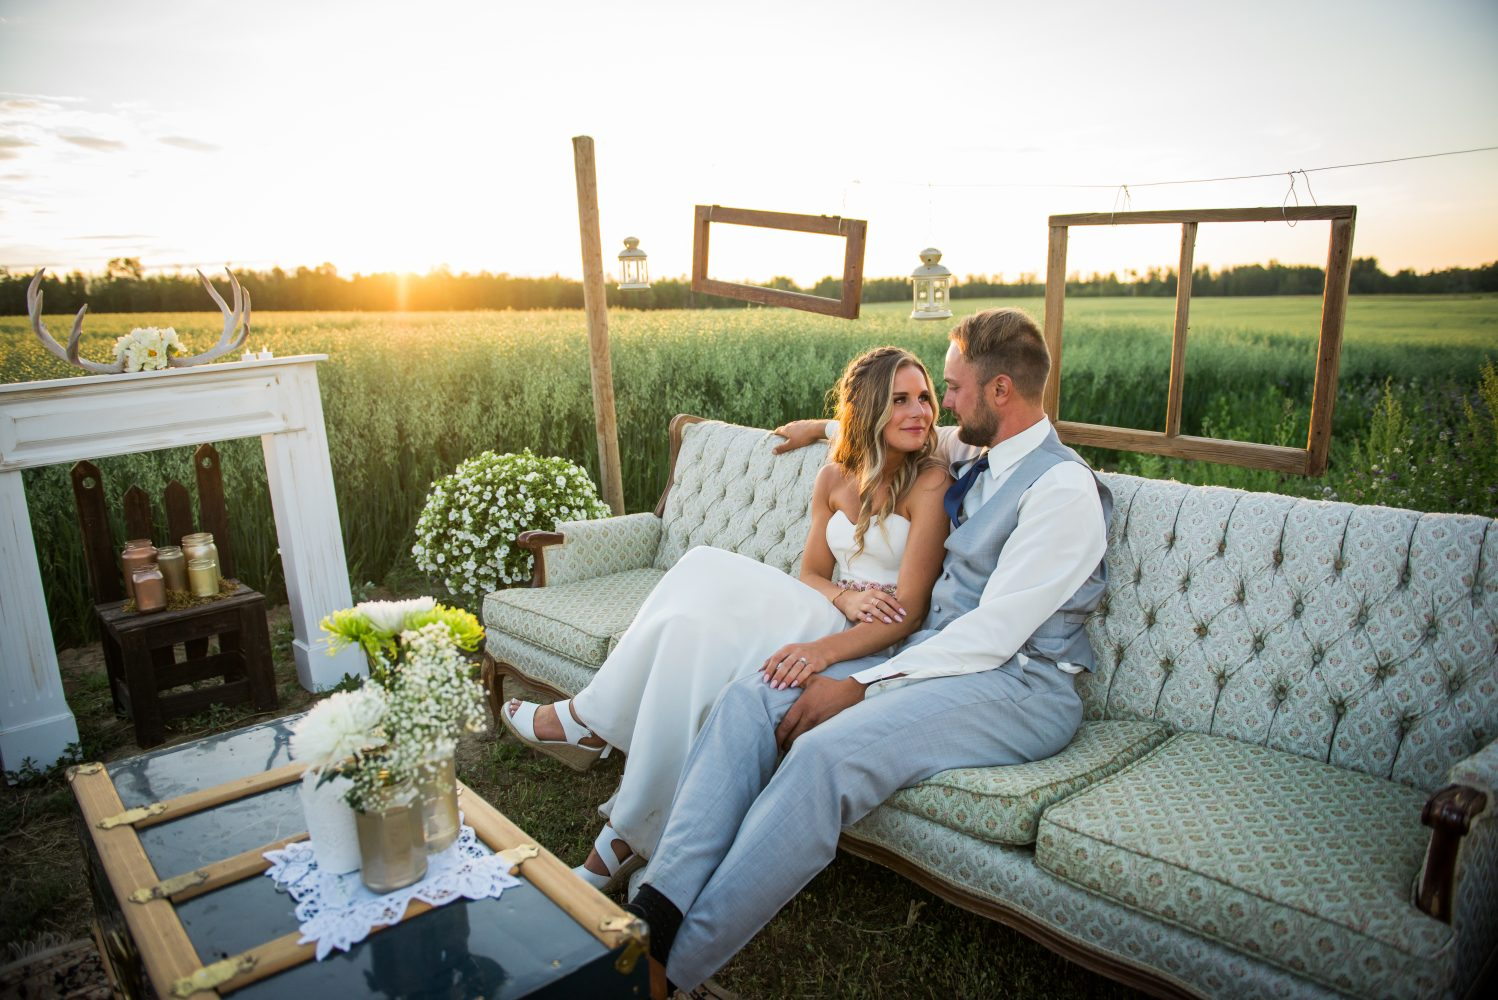 A beautiful farm wedding in rural Alberta and country lounge set up for the guests to enjoy | 3Haus Photographics